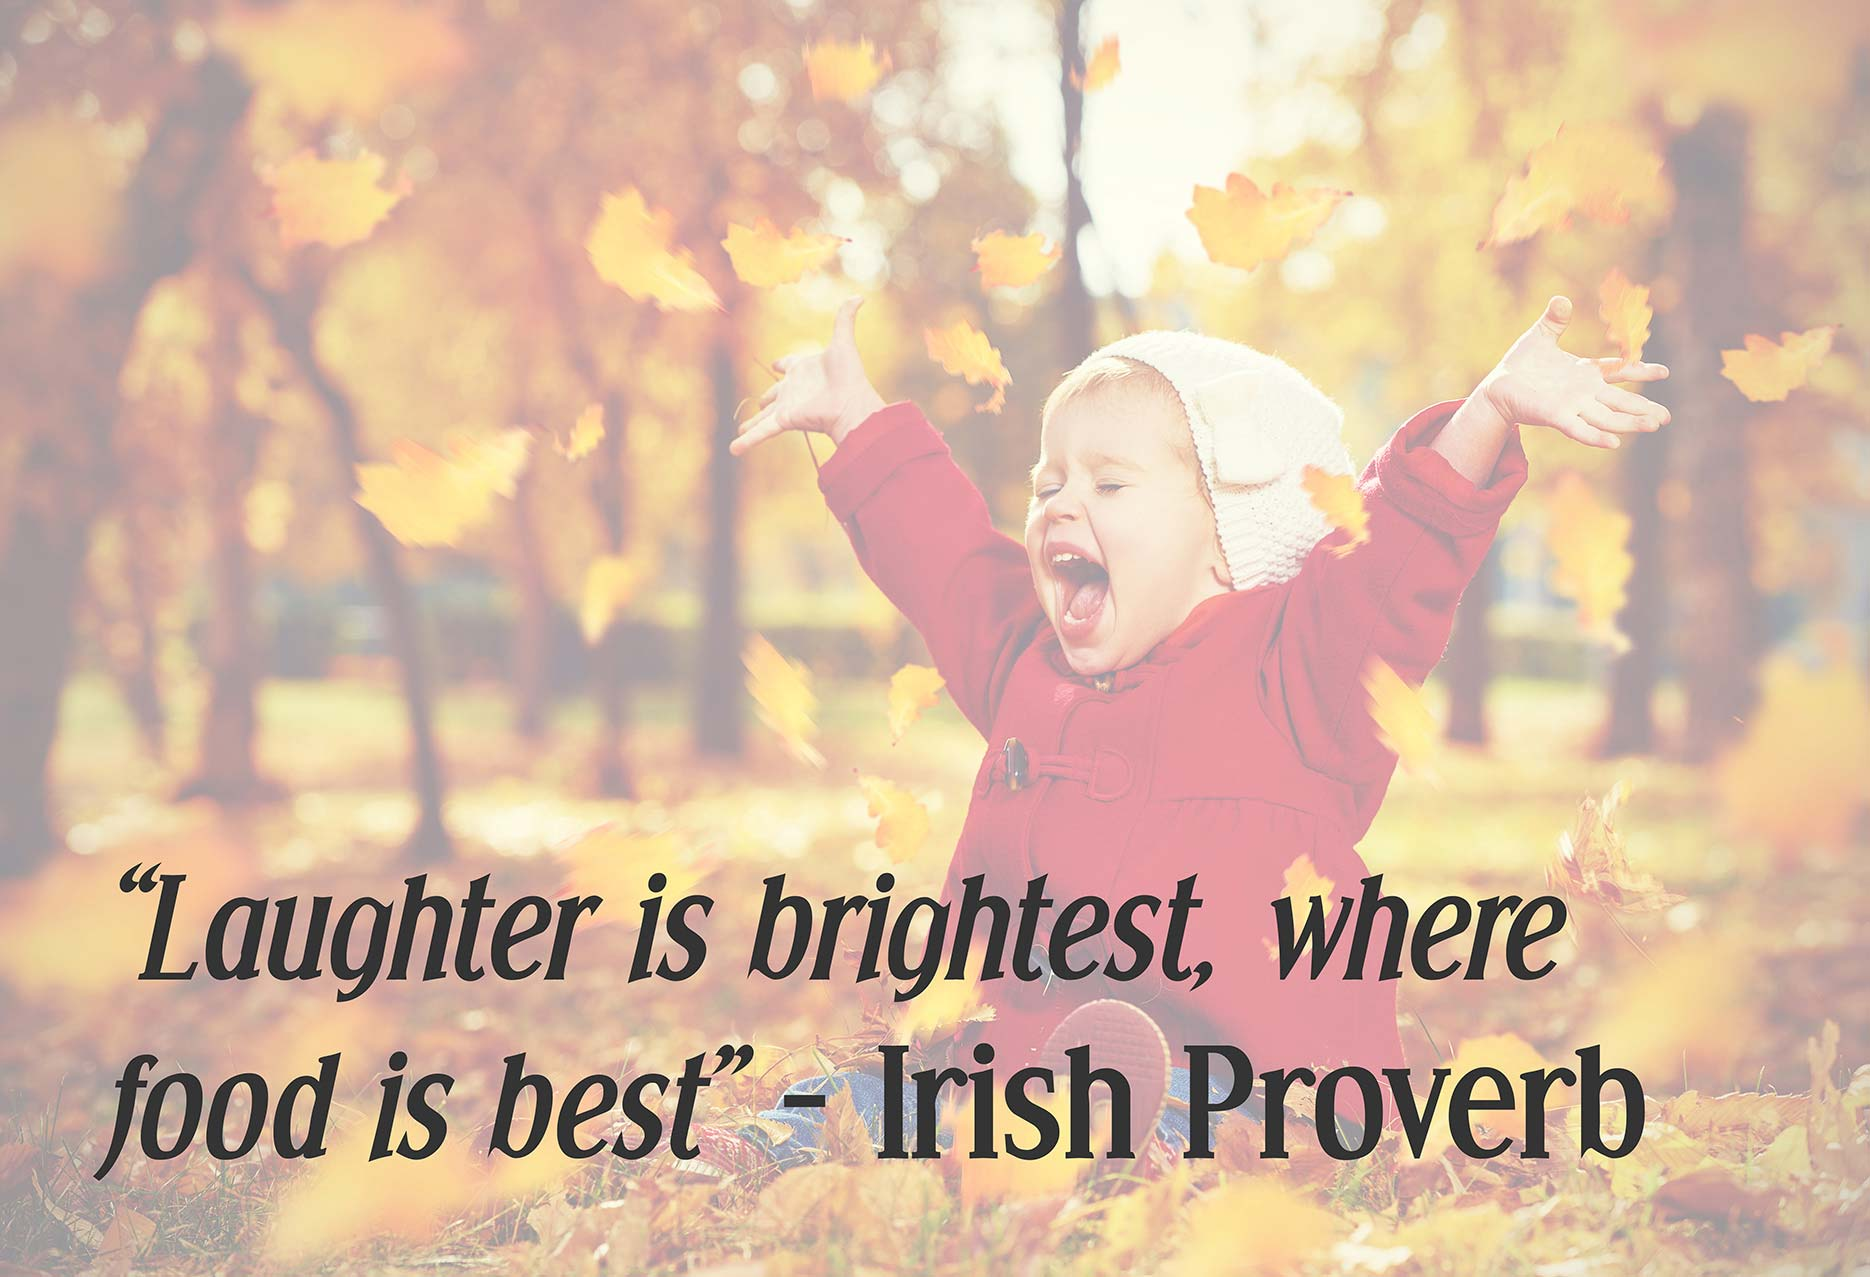 Laughter is brightest, where food is best - Irish Proverb